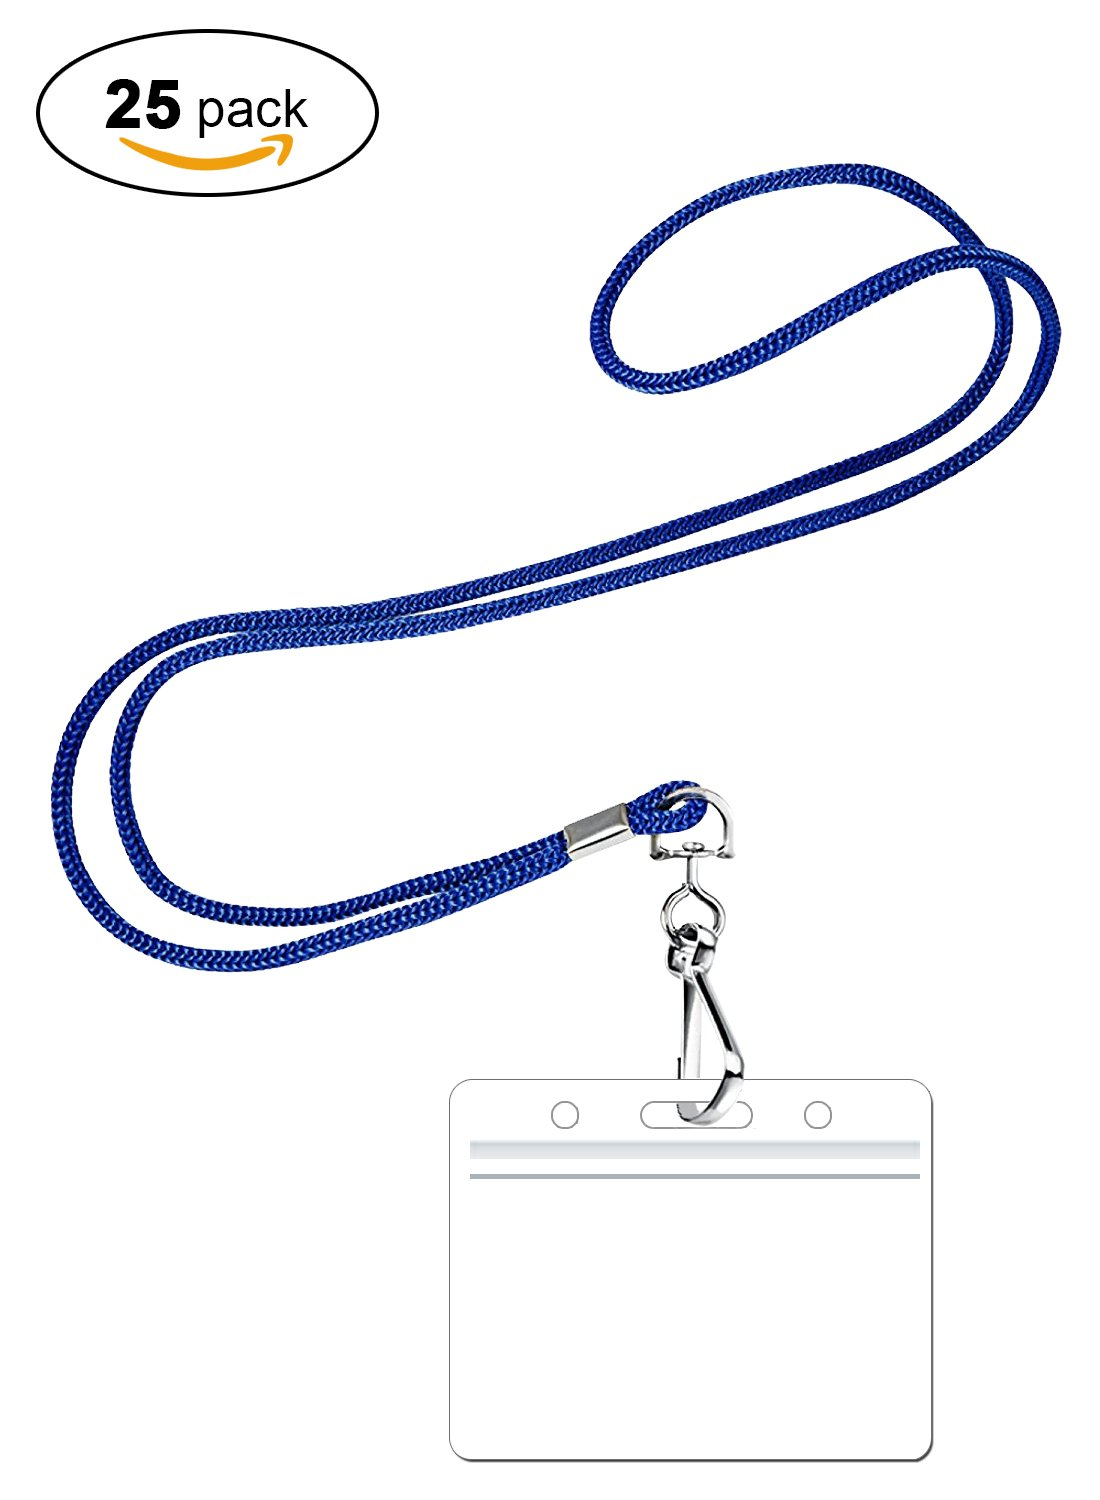 PROMOKING Woven Lanyard with Horizontal ID Badge Holder and Swivel Hook Available In 3 Colors | Red, Royal Blue, Black (25pk, Royal Blue)